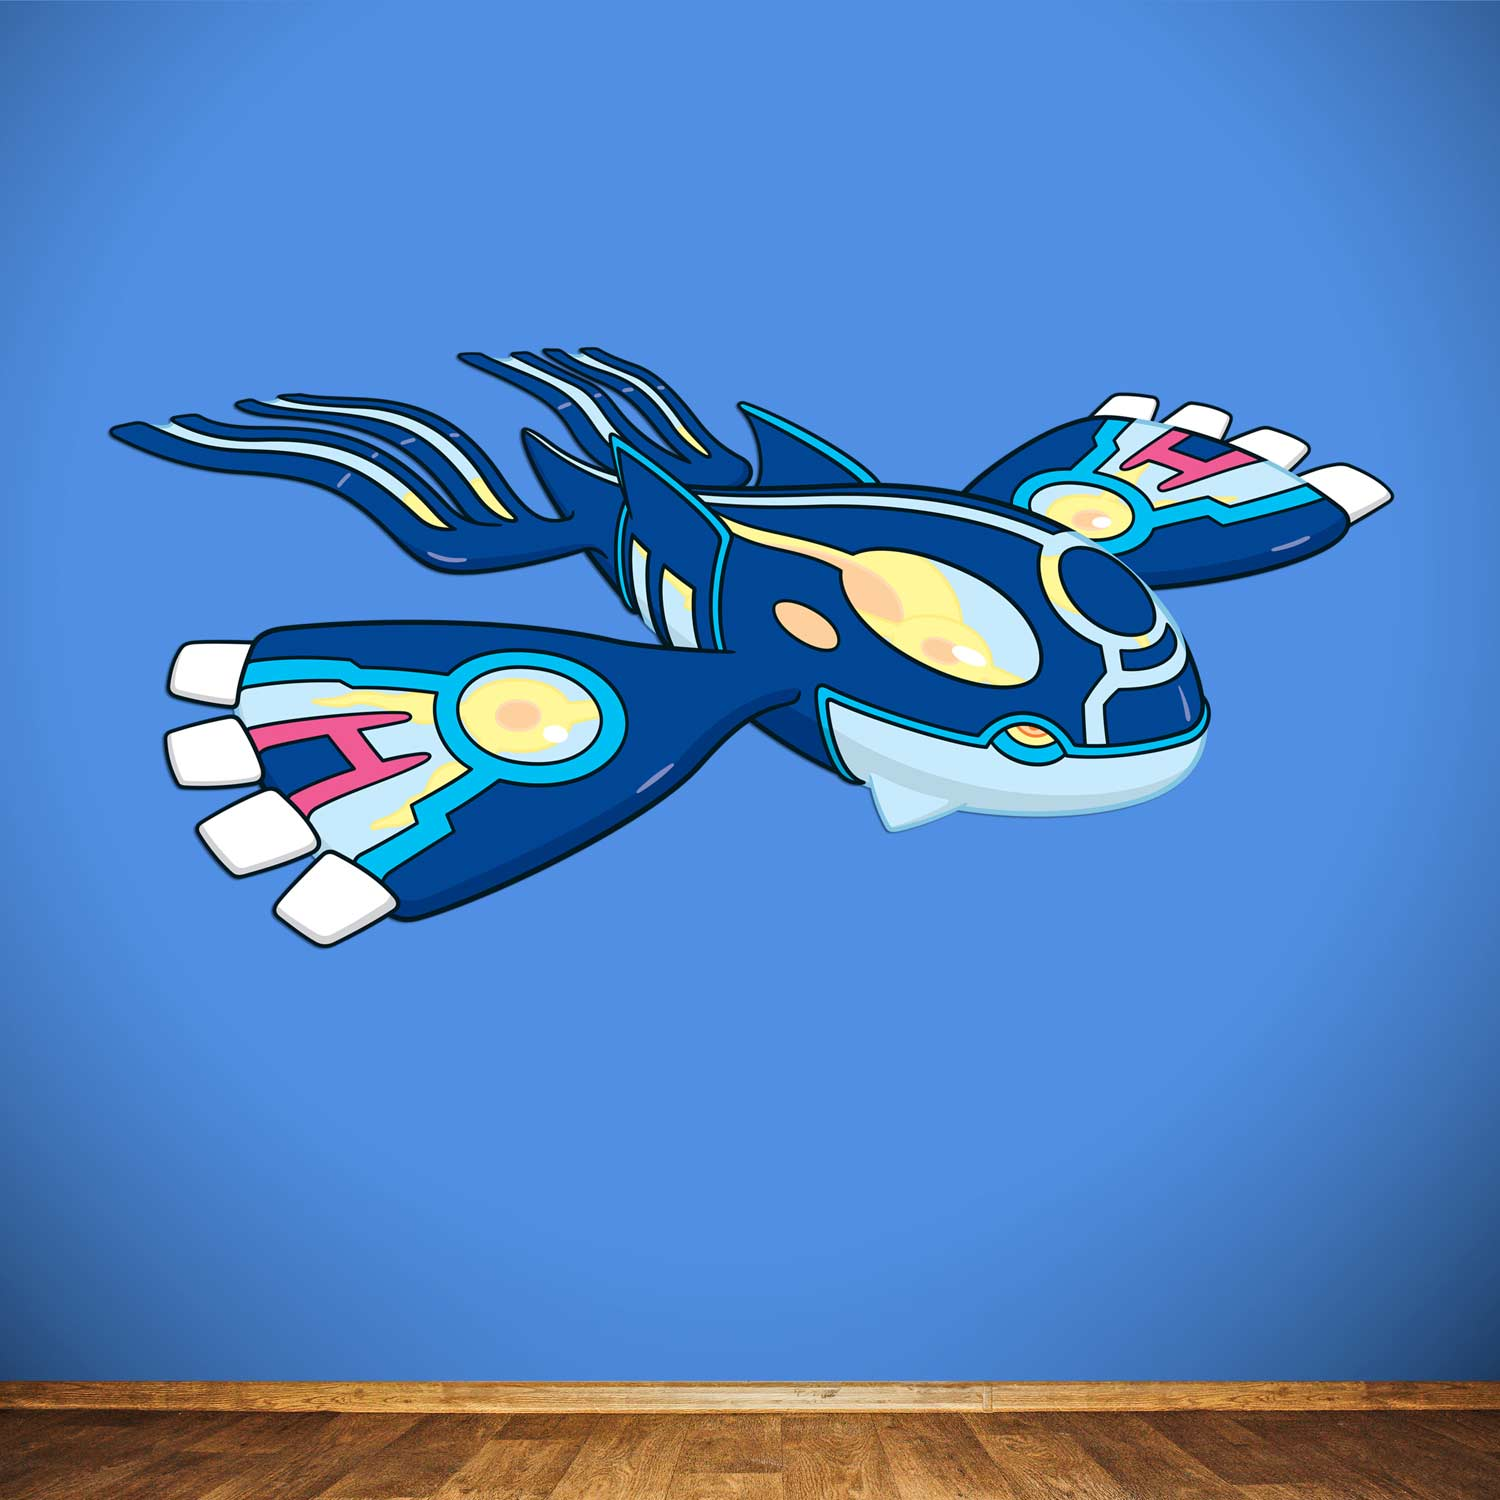 Primal Kyogre primal kyogre wall graphics | kyogre | pokémon center original